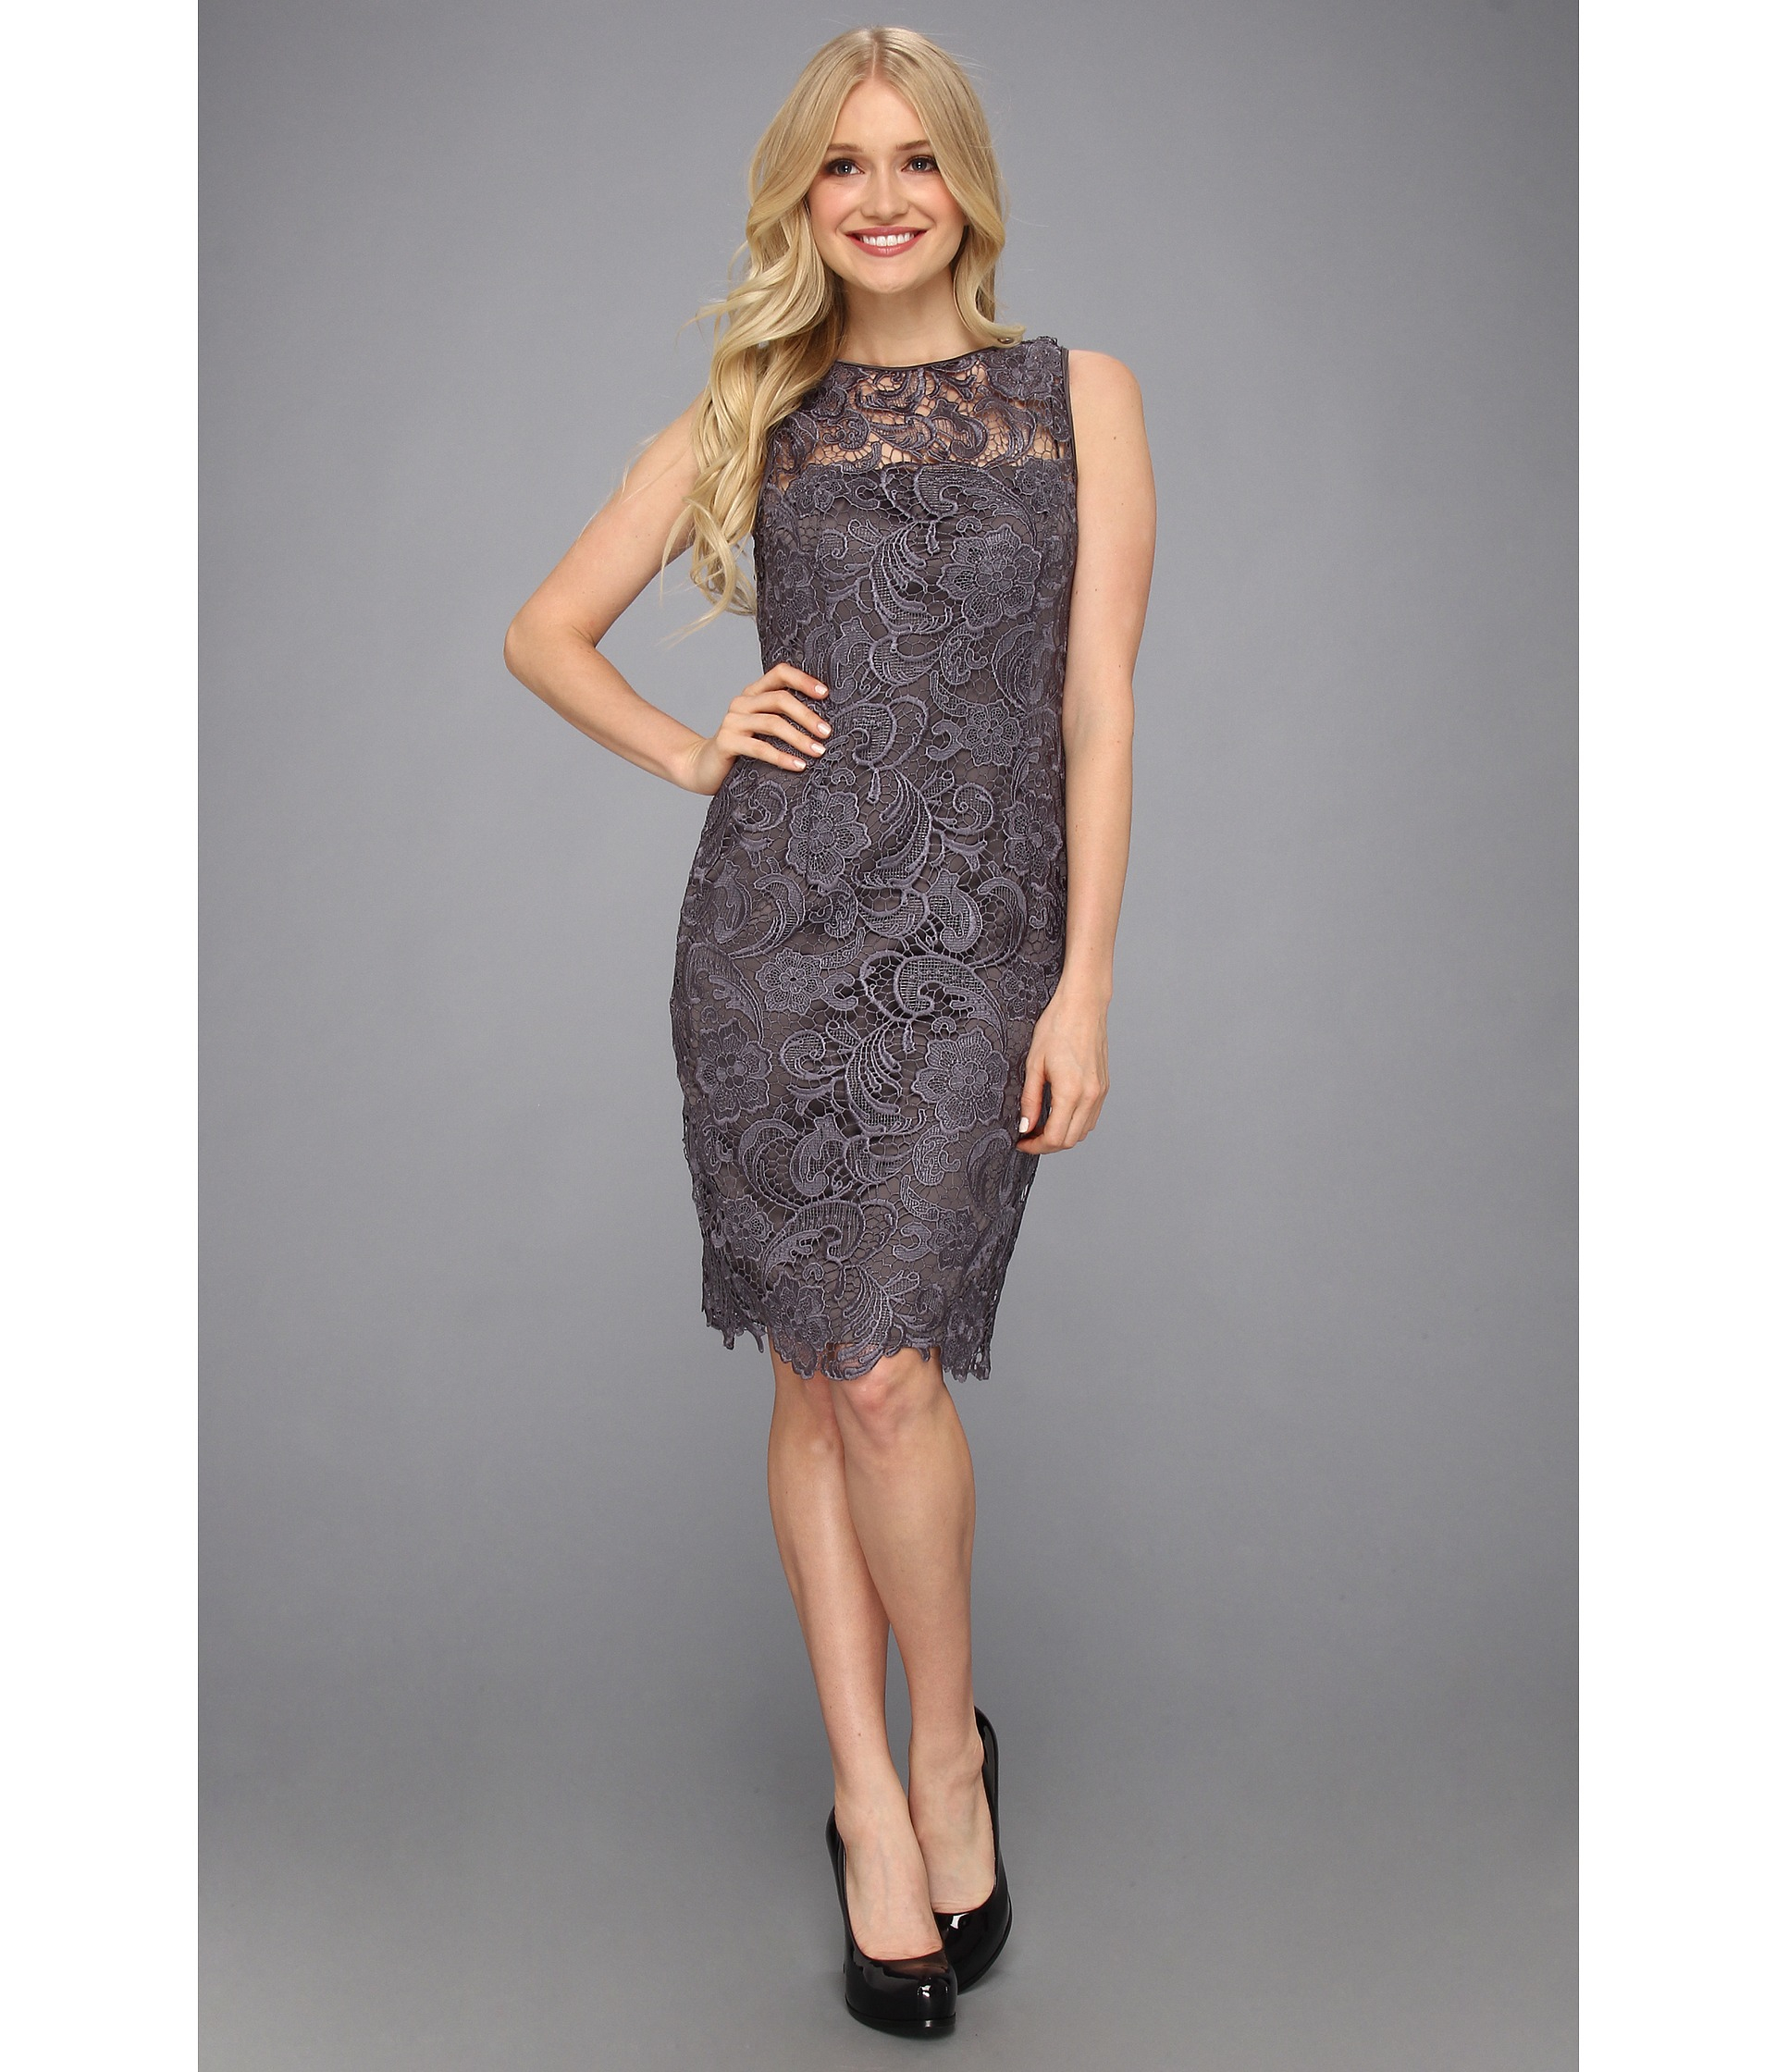 efa45882c7 Lyst - Adrianna Papell Illusion Neck Lace Dress in Black